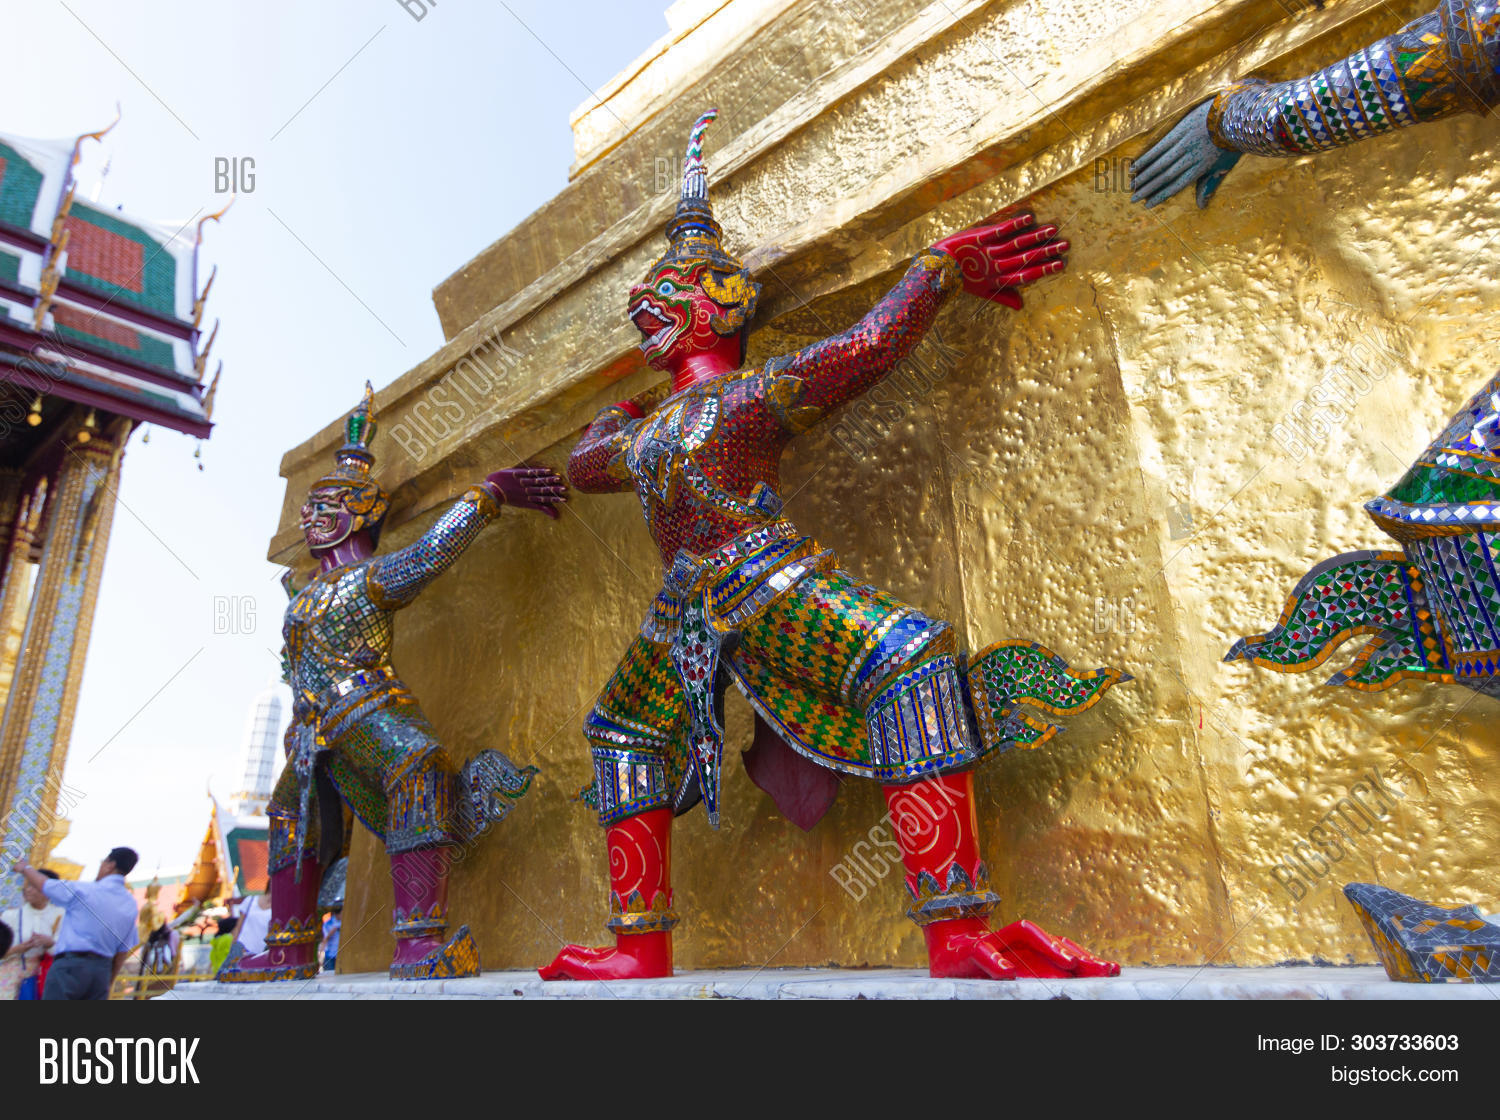 ancient,architecture,art,artstatues,asia,asian,background,bangkok,bear,buddhism,buddhist,culture,design,face,gain,giant,gold,golden,grand,grounds,guard,guardian,head,historic,history,holiday,kaew,landmark,large,offering,old,pagoda,pantomime,pra,protect,ramakien,red,religion,sculpture,serene,stand,statue,temple,thai,thailand,tourism,tours,travel,wat